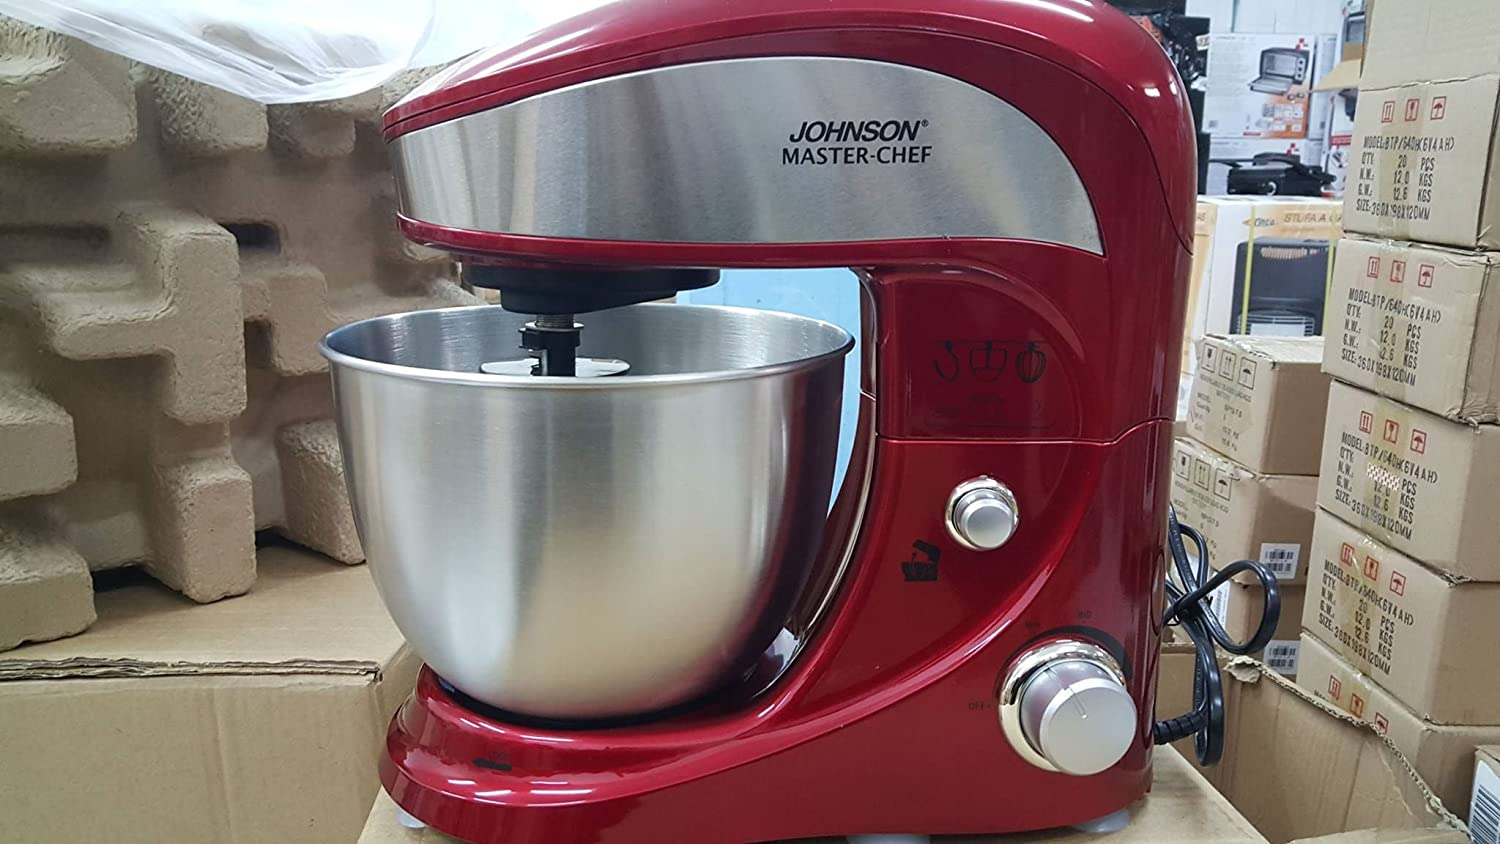 Johnson Master-chef - Batidora, amasadora, mezcladora, 1.000 W: Amazon.es: Hogar